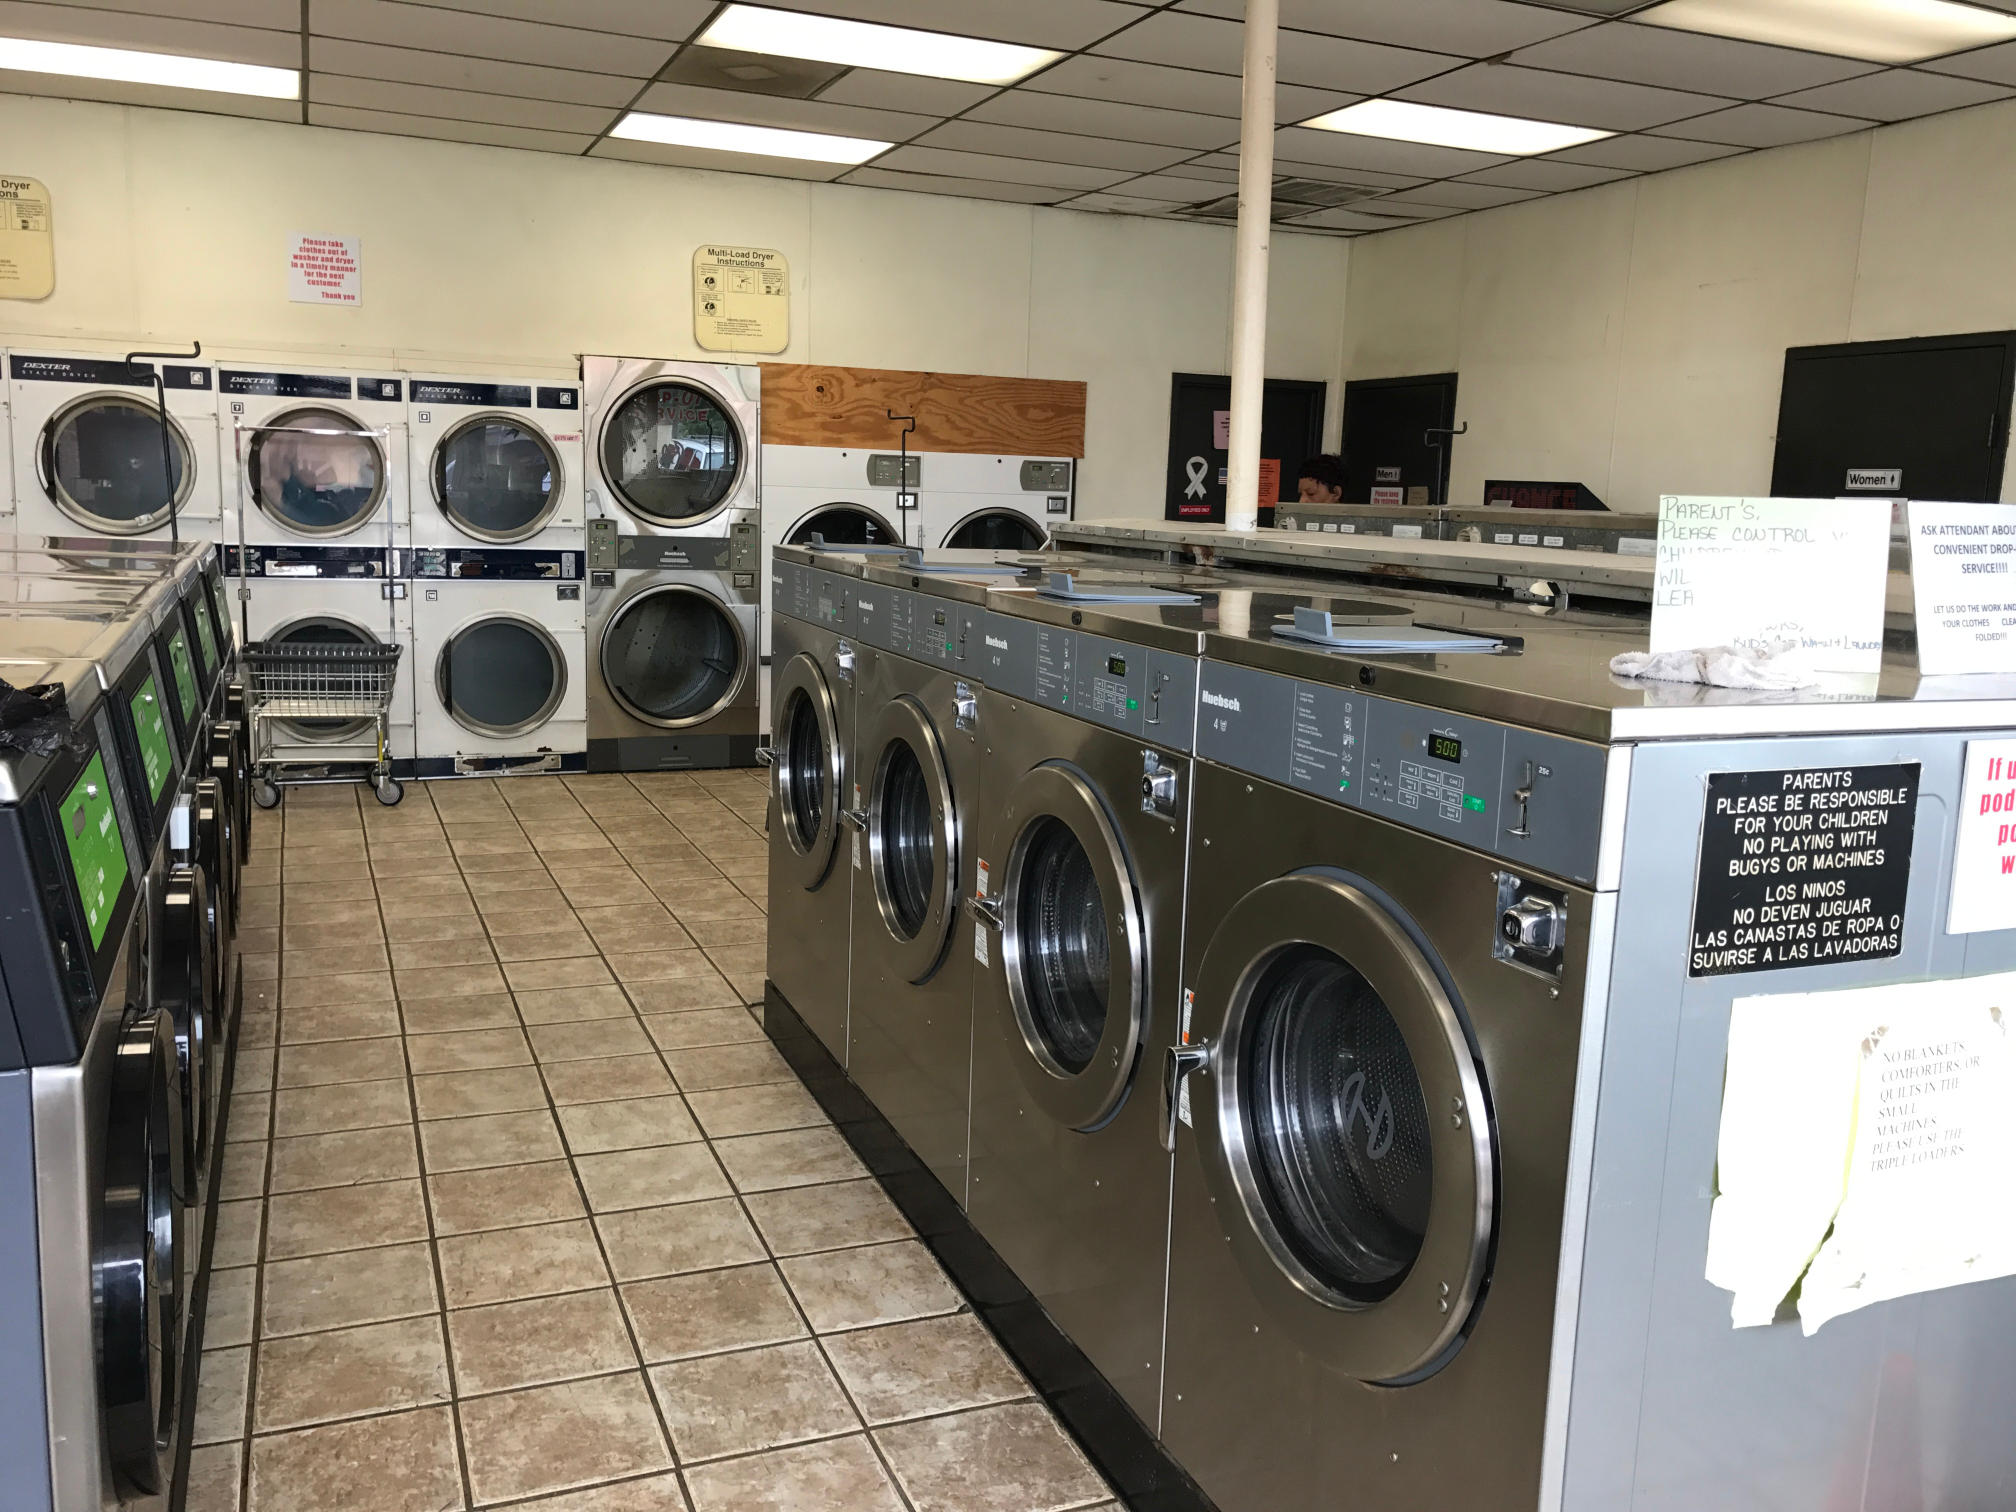 West memphis car wash and laundromat buds car wash and laundry leave us a review solutioingenieria Image collections